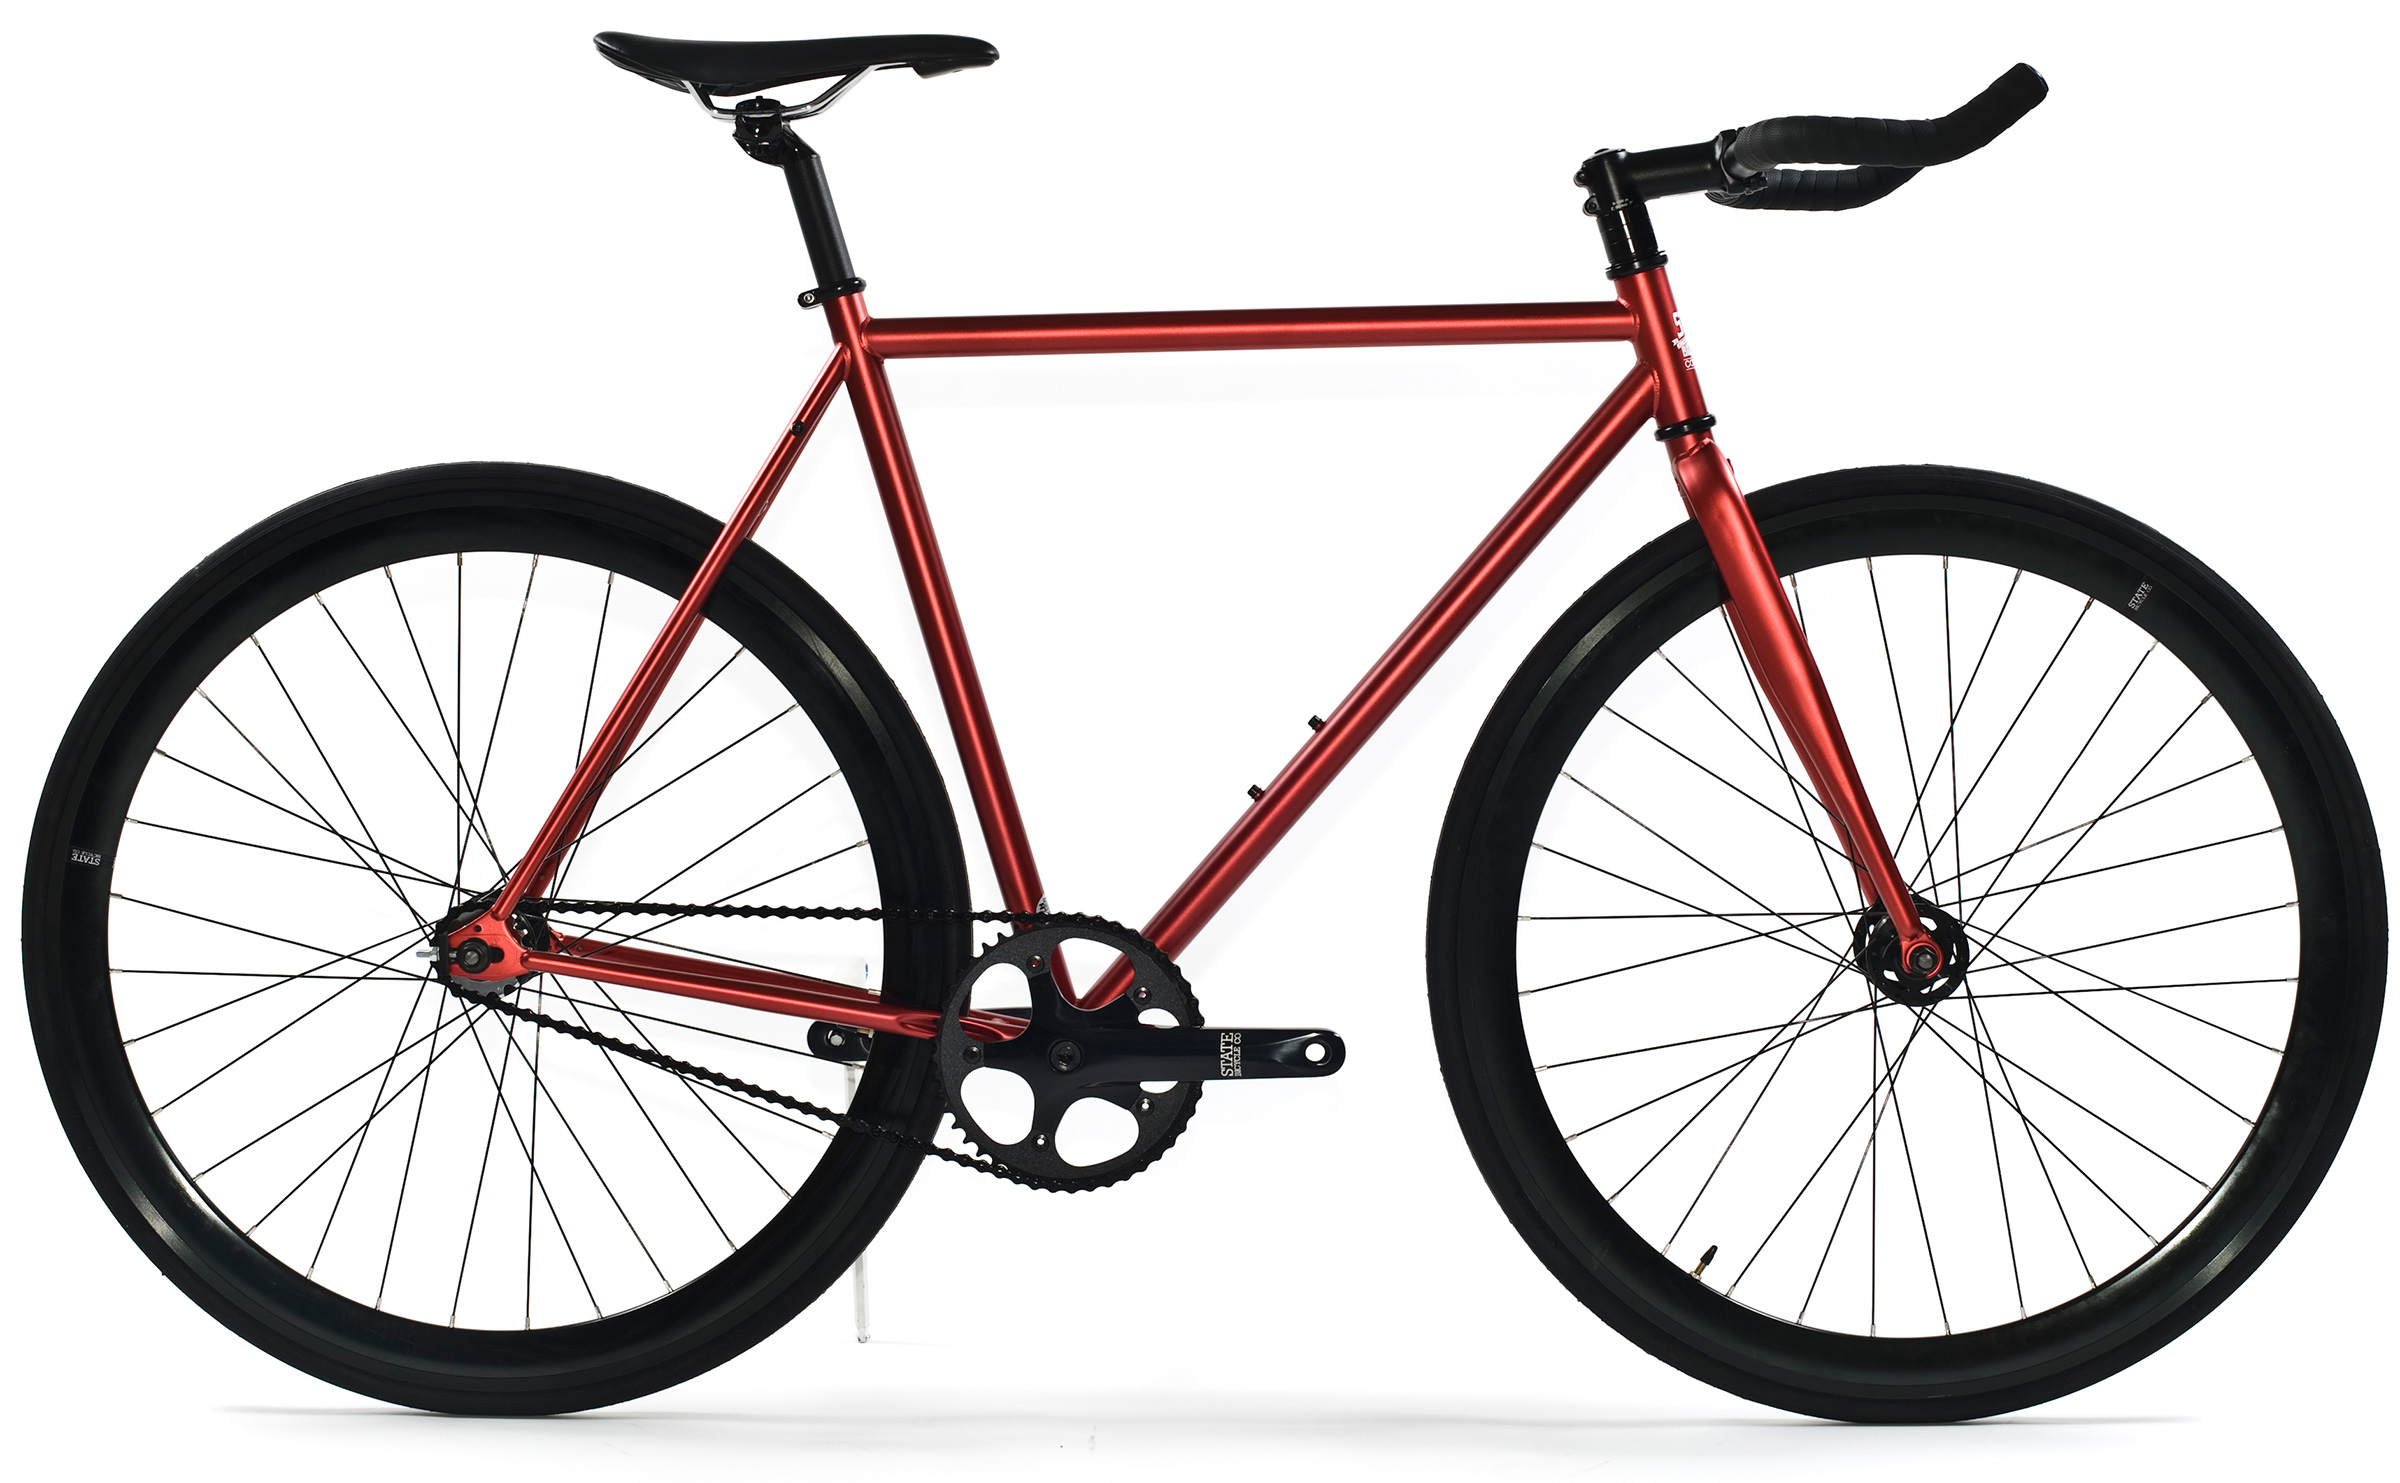 Red Sport Bicycle 1443.97 Kb